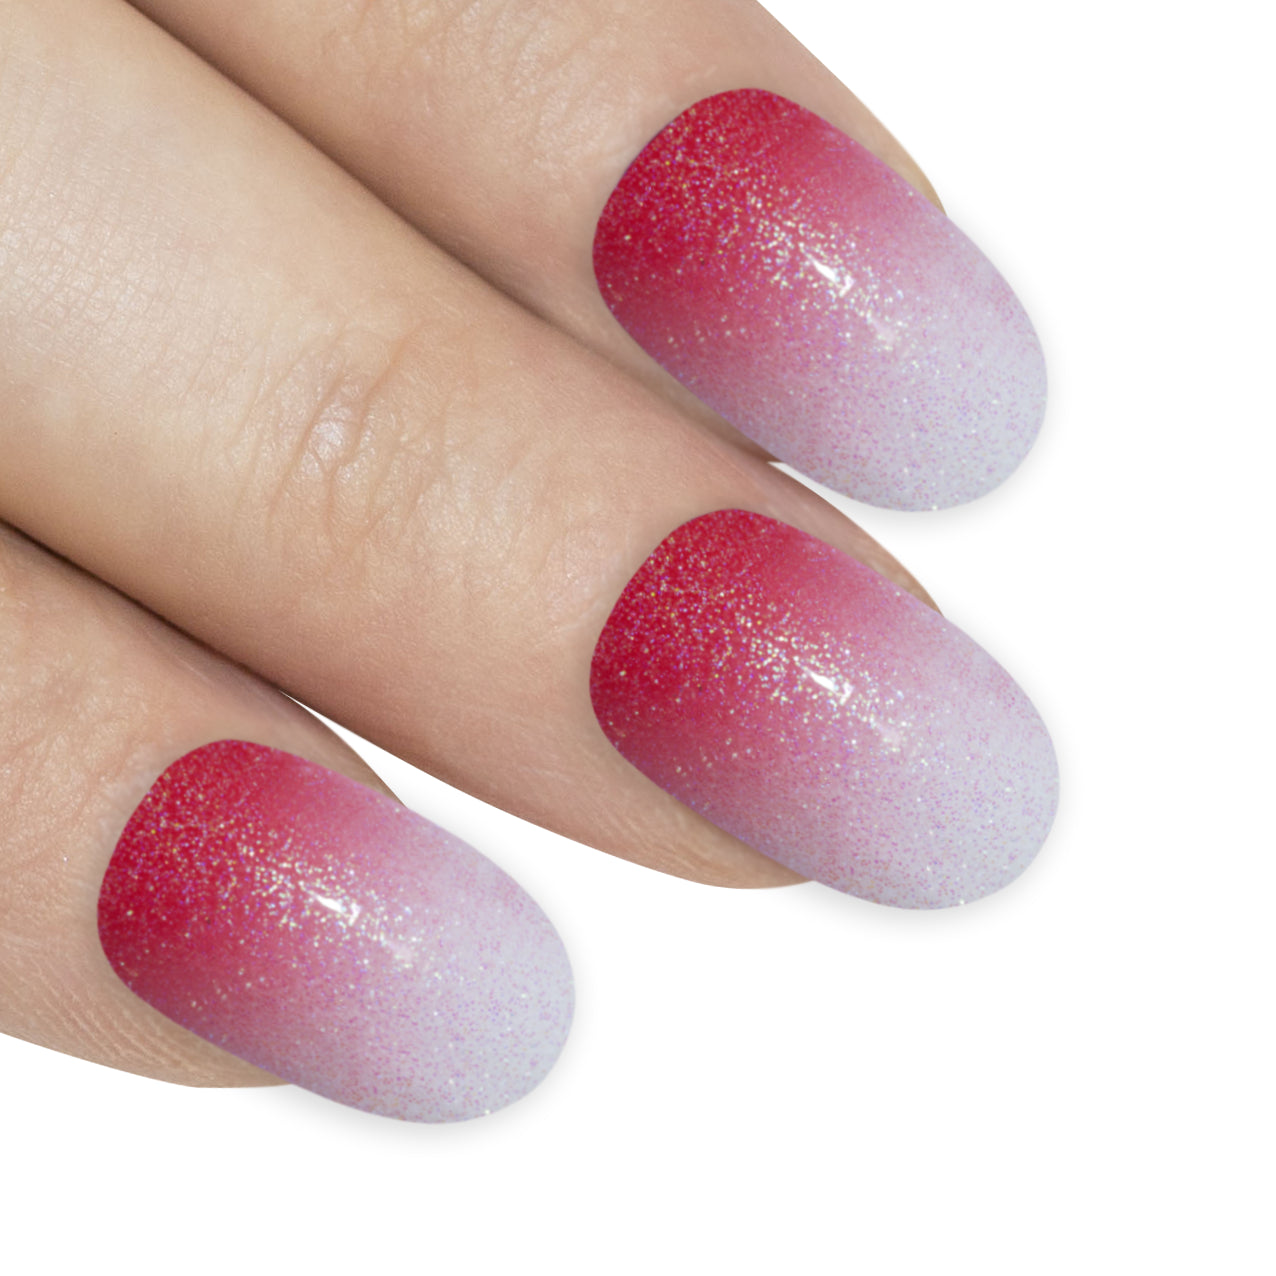 False Nails by Bling Art Red Gel Ombre Oval Medium Fake Acrylic 24 Tips Glue, Health & Beauty by Bling Art